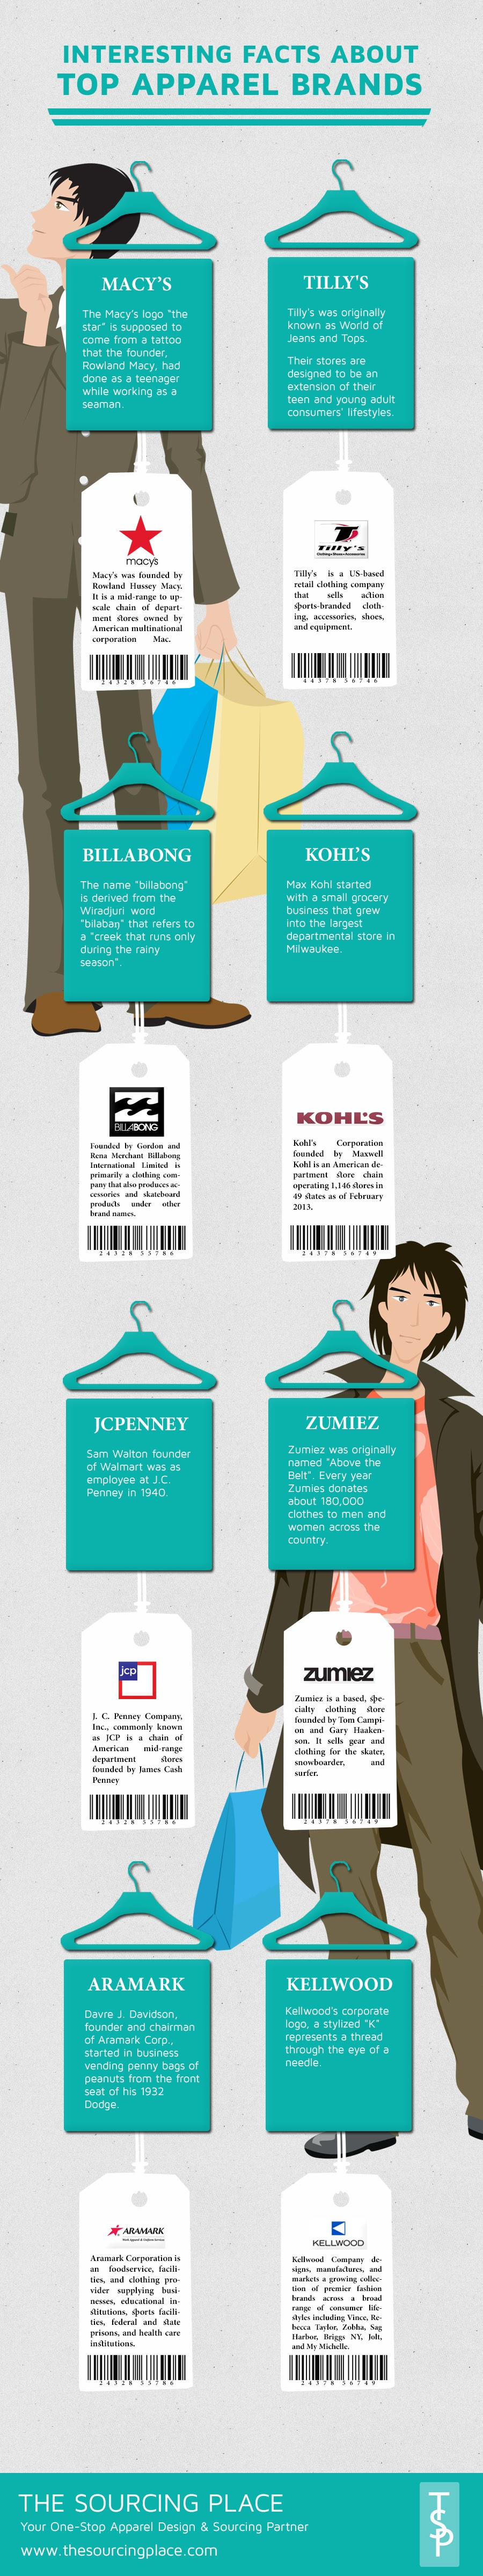 Interesting Facts About Top Apparel Brands  #Infographic